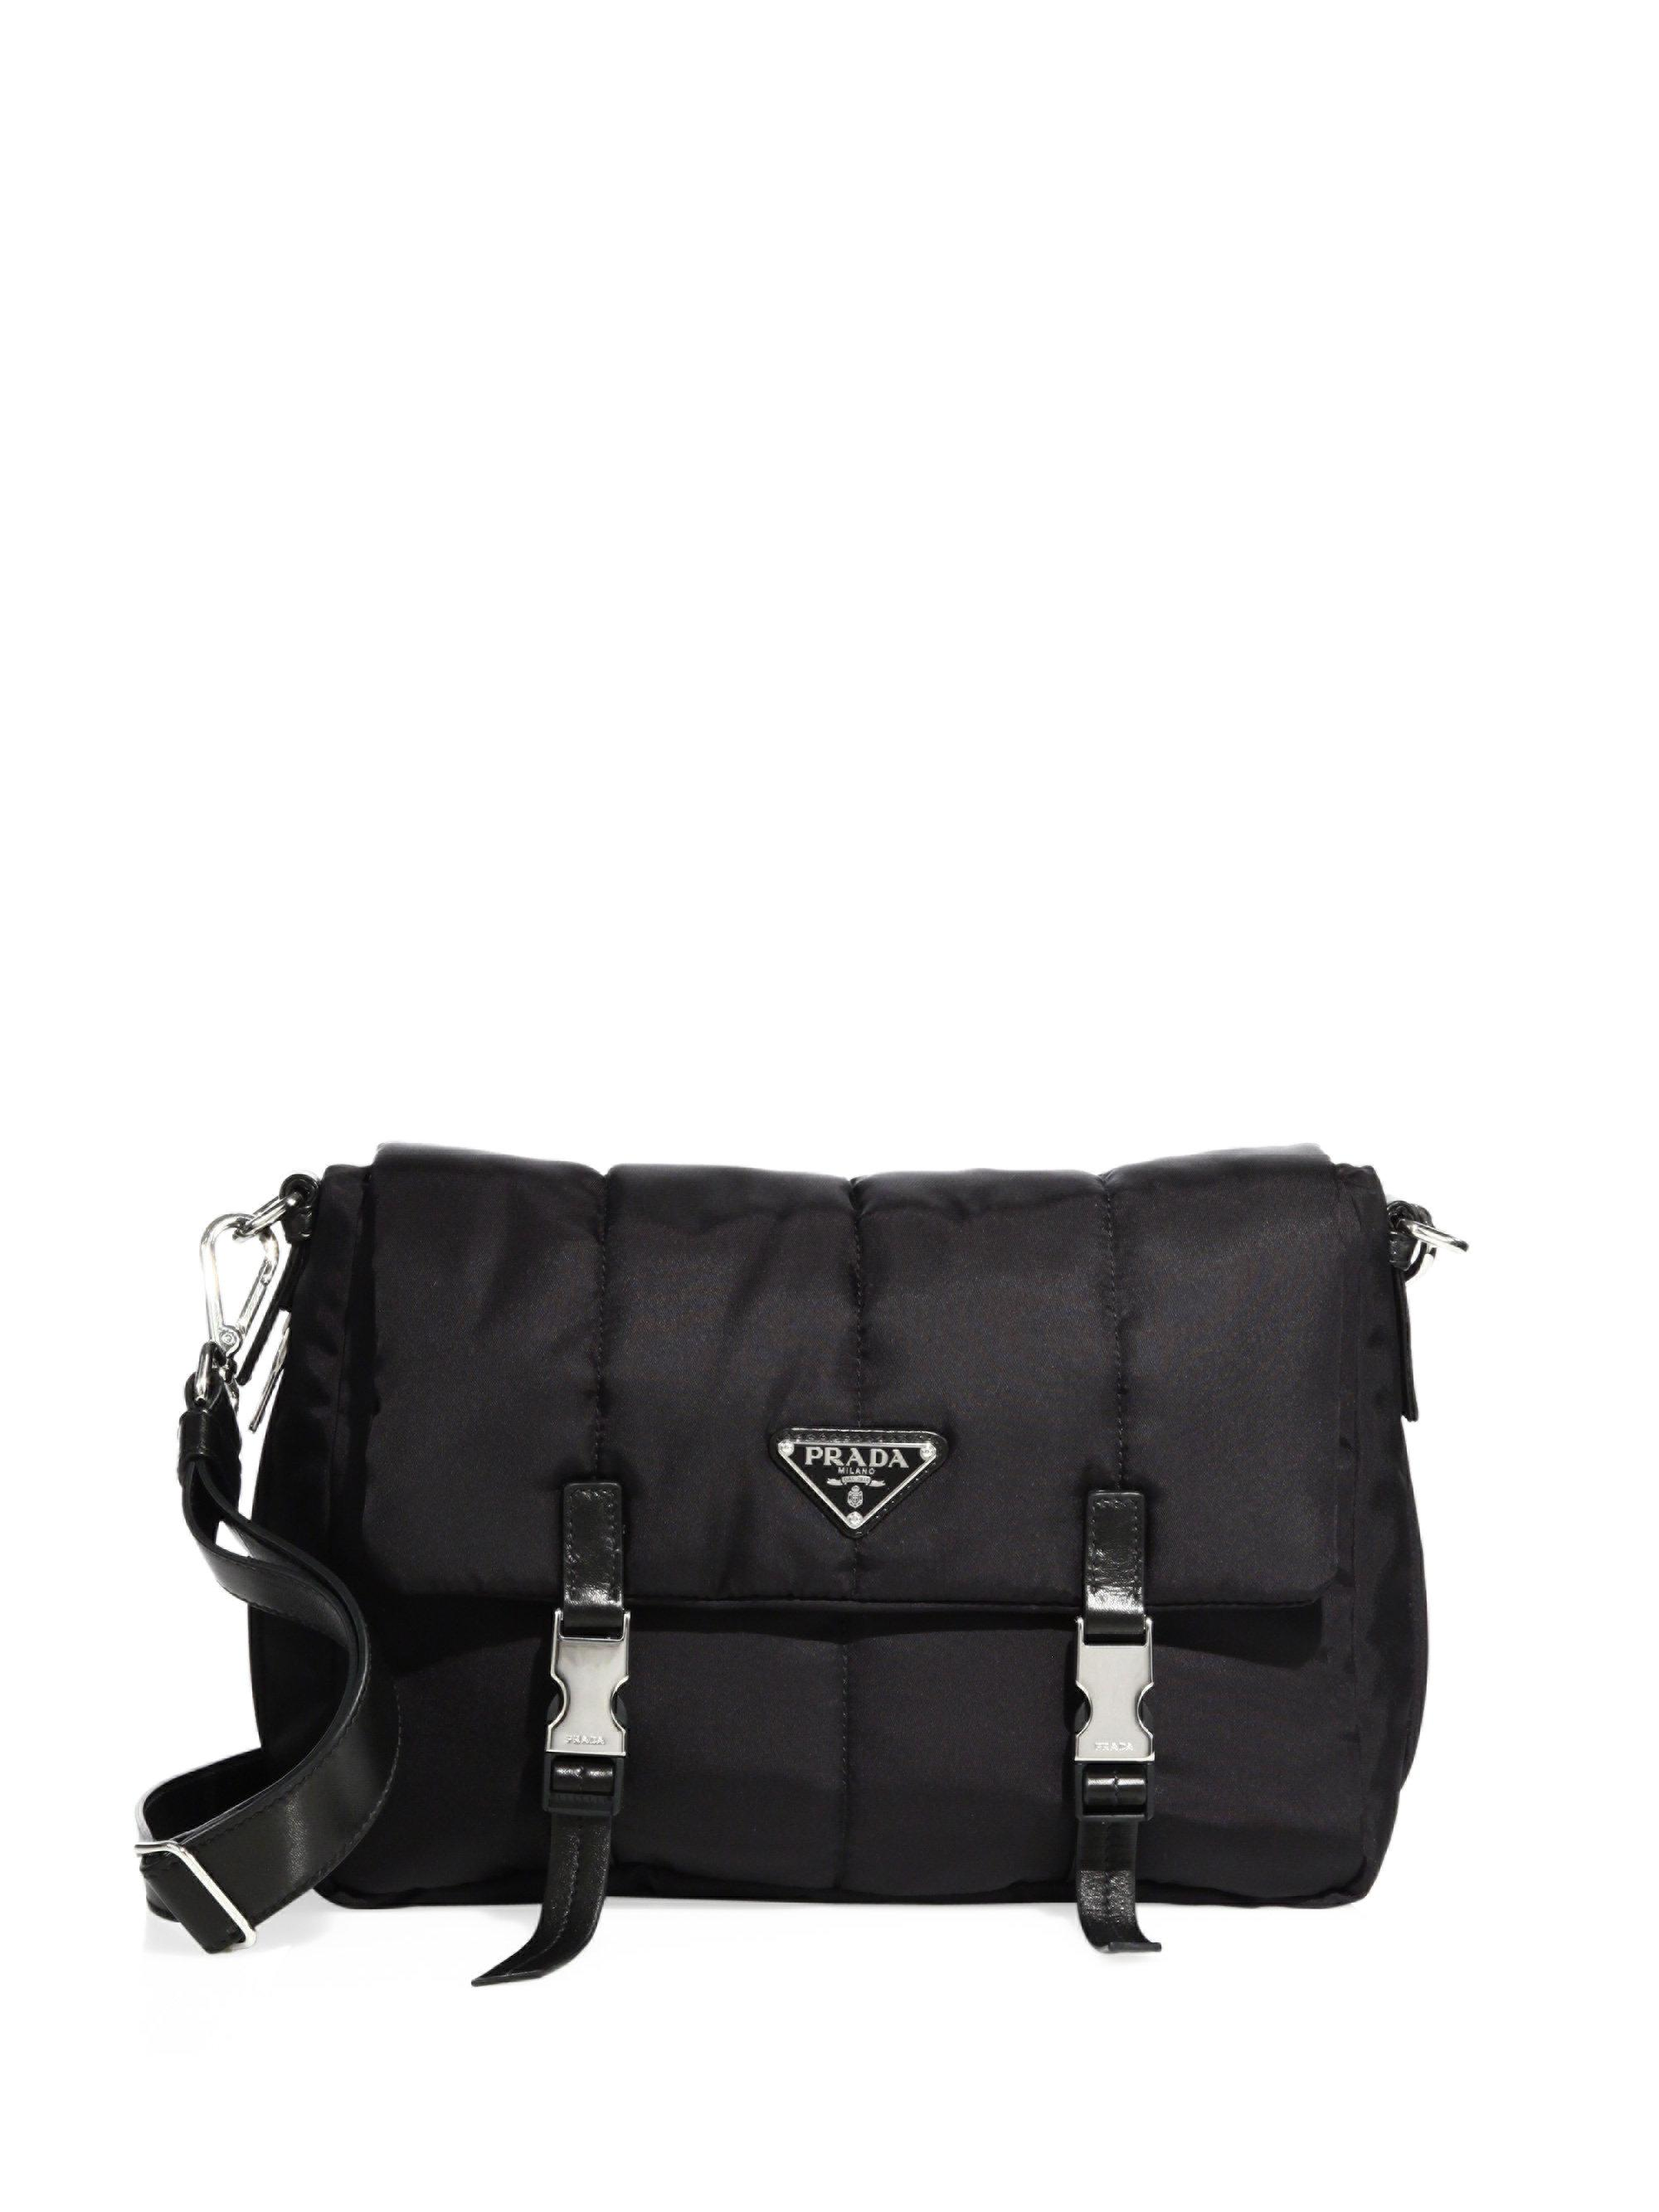 9f2c0d81ba3983 ... inexpensive lyst prada tessuto nylon bomber messenger bag in black  cf0c9 9d610